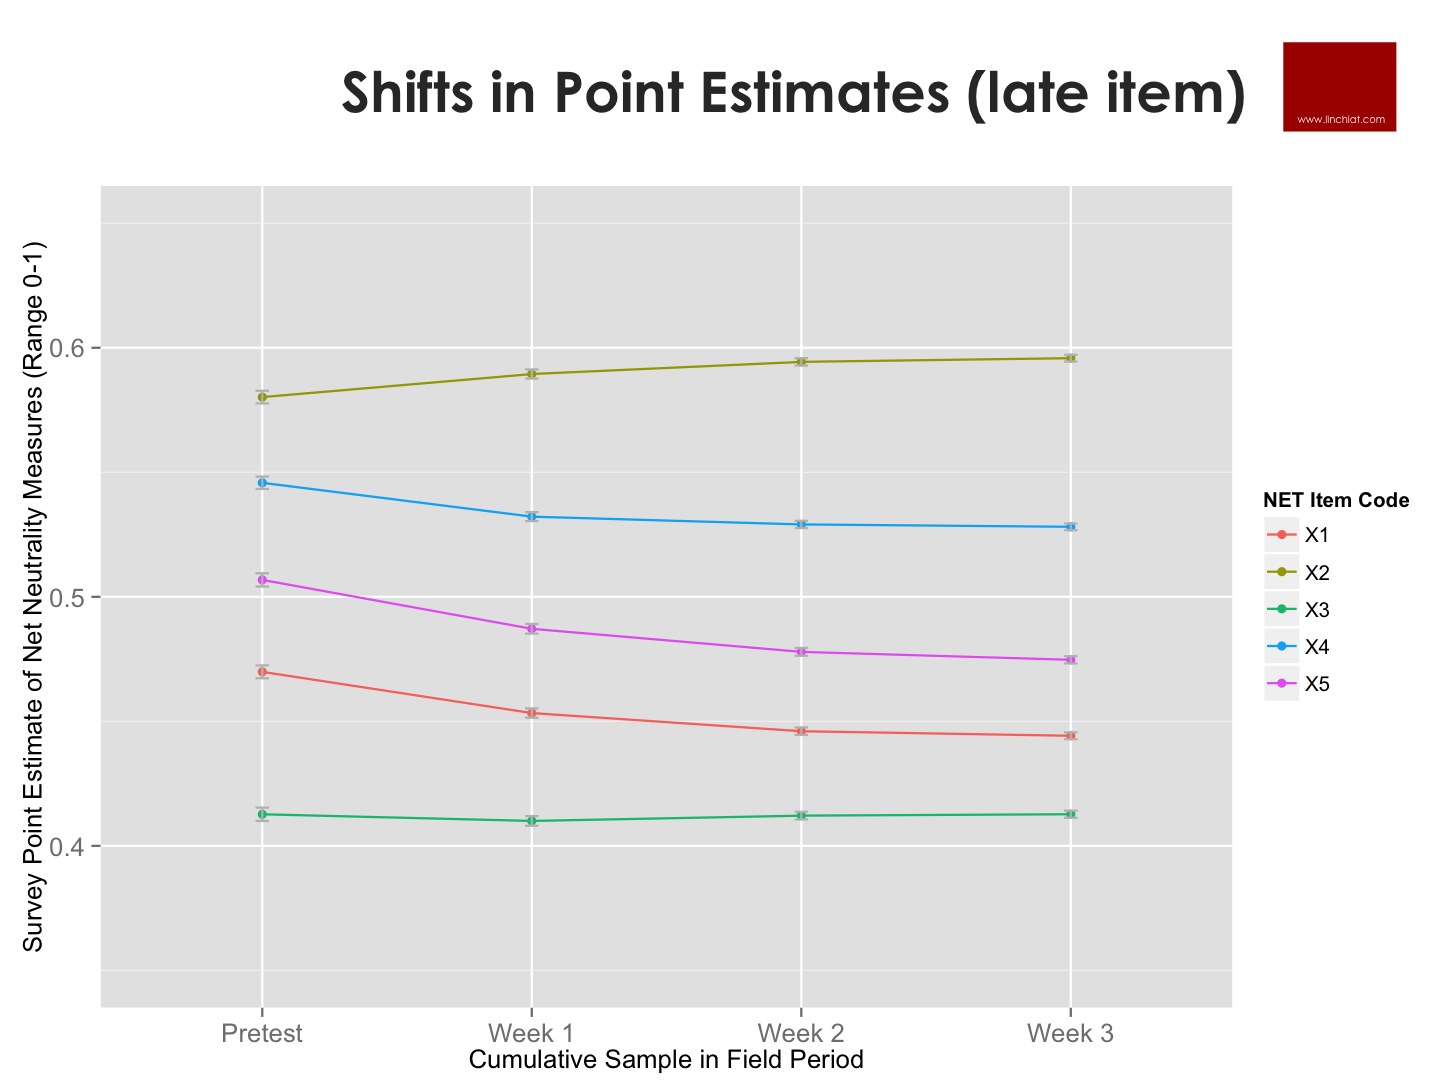 Shifts in Point Estimates - NET NEUTRALITY measures.jpg